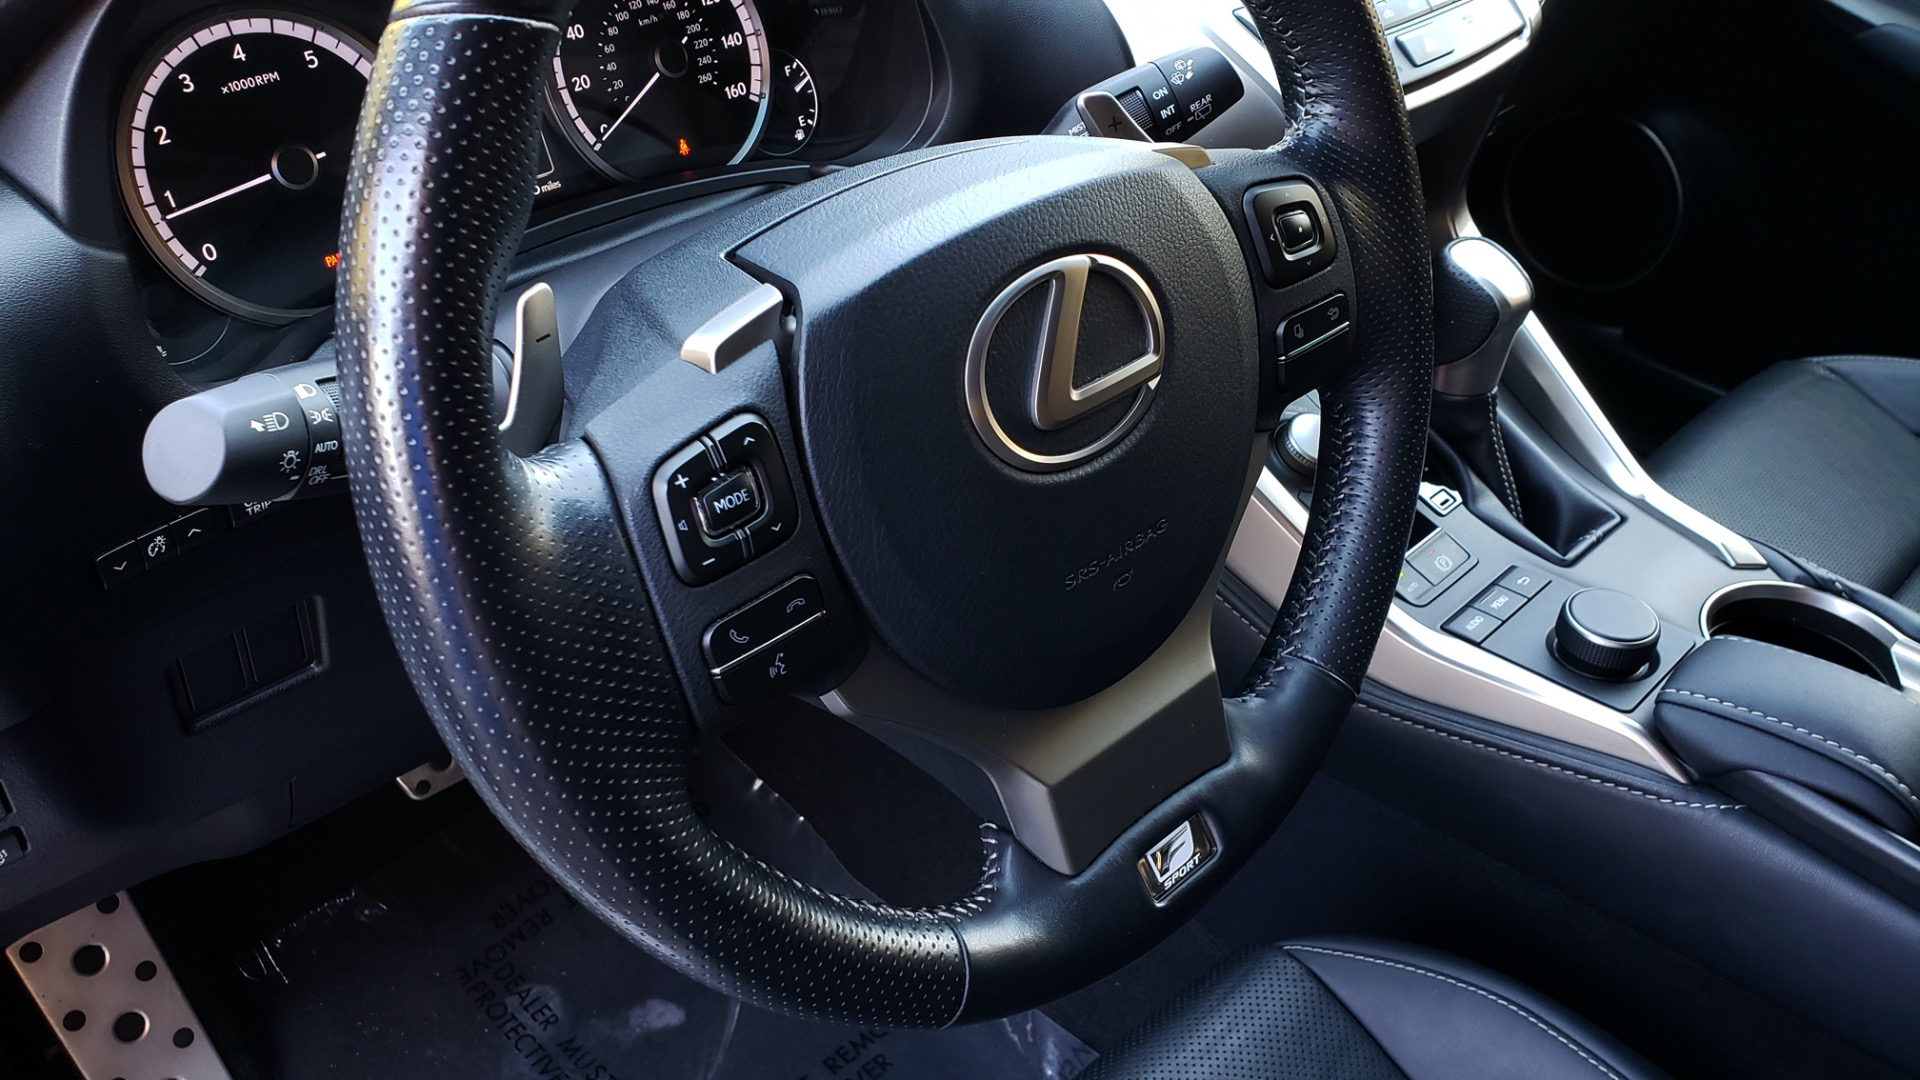 Used 2016 Lexus NX 200t F-SPORT / BACK-UP CAMERA / 18 INCH WHEELS for sale Sold at Formula Imports in Charlotte NC 28227 39